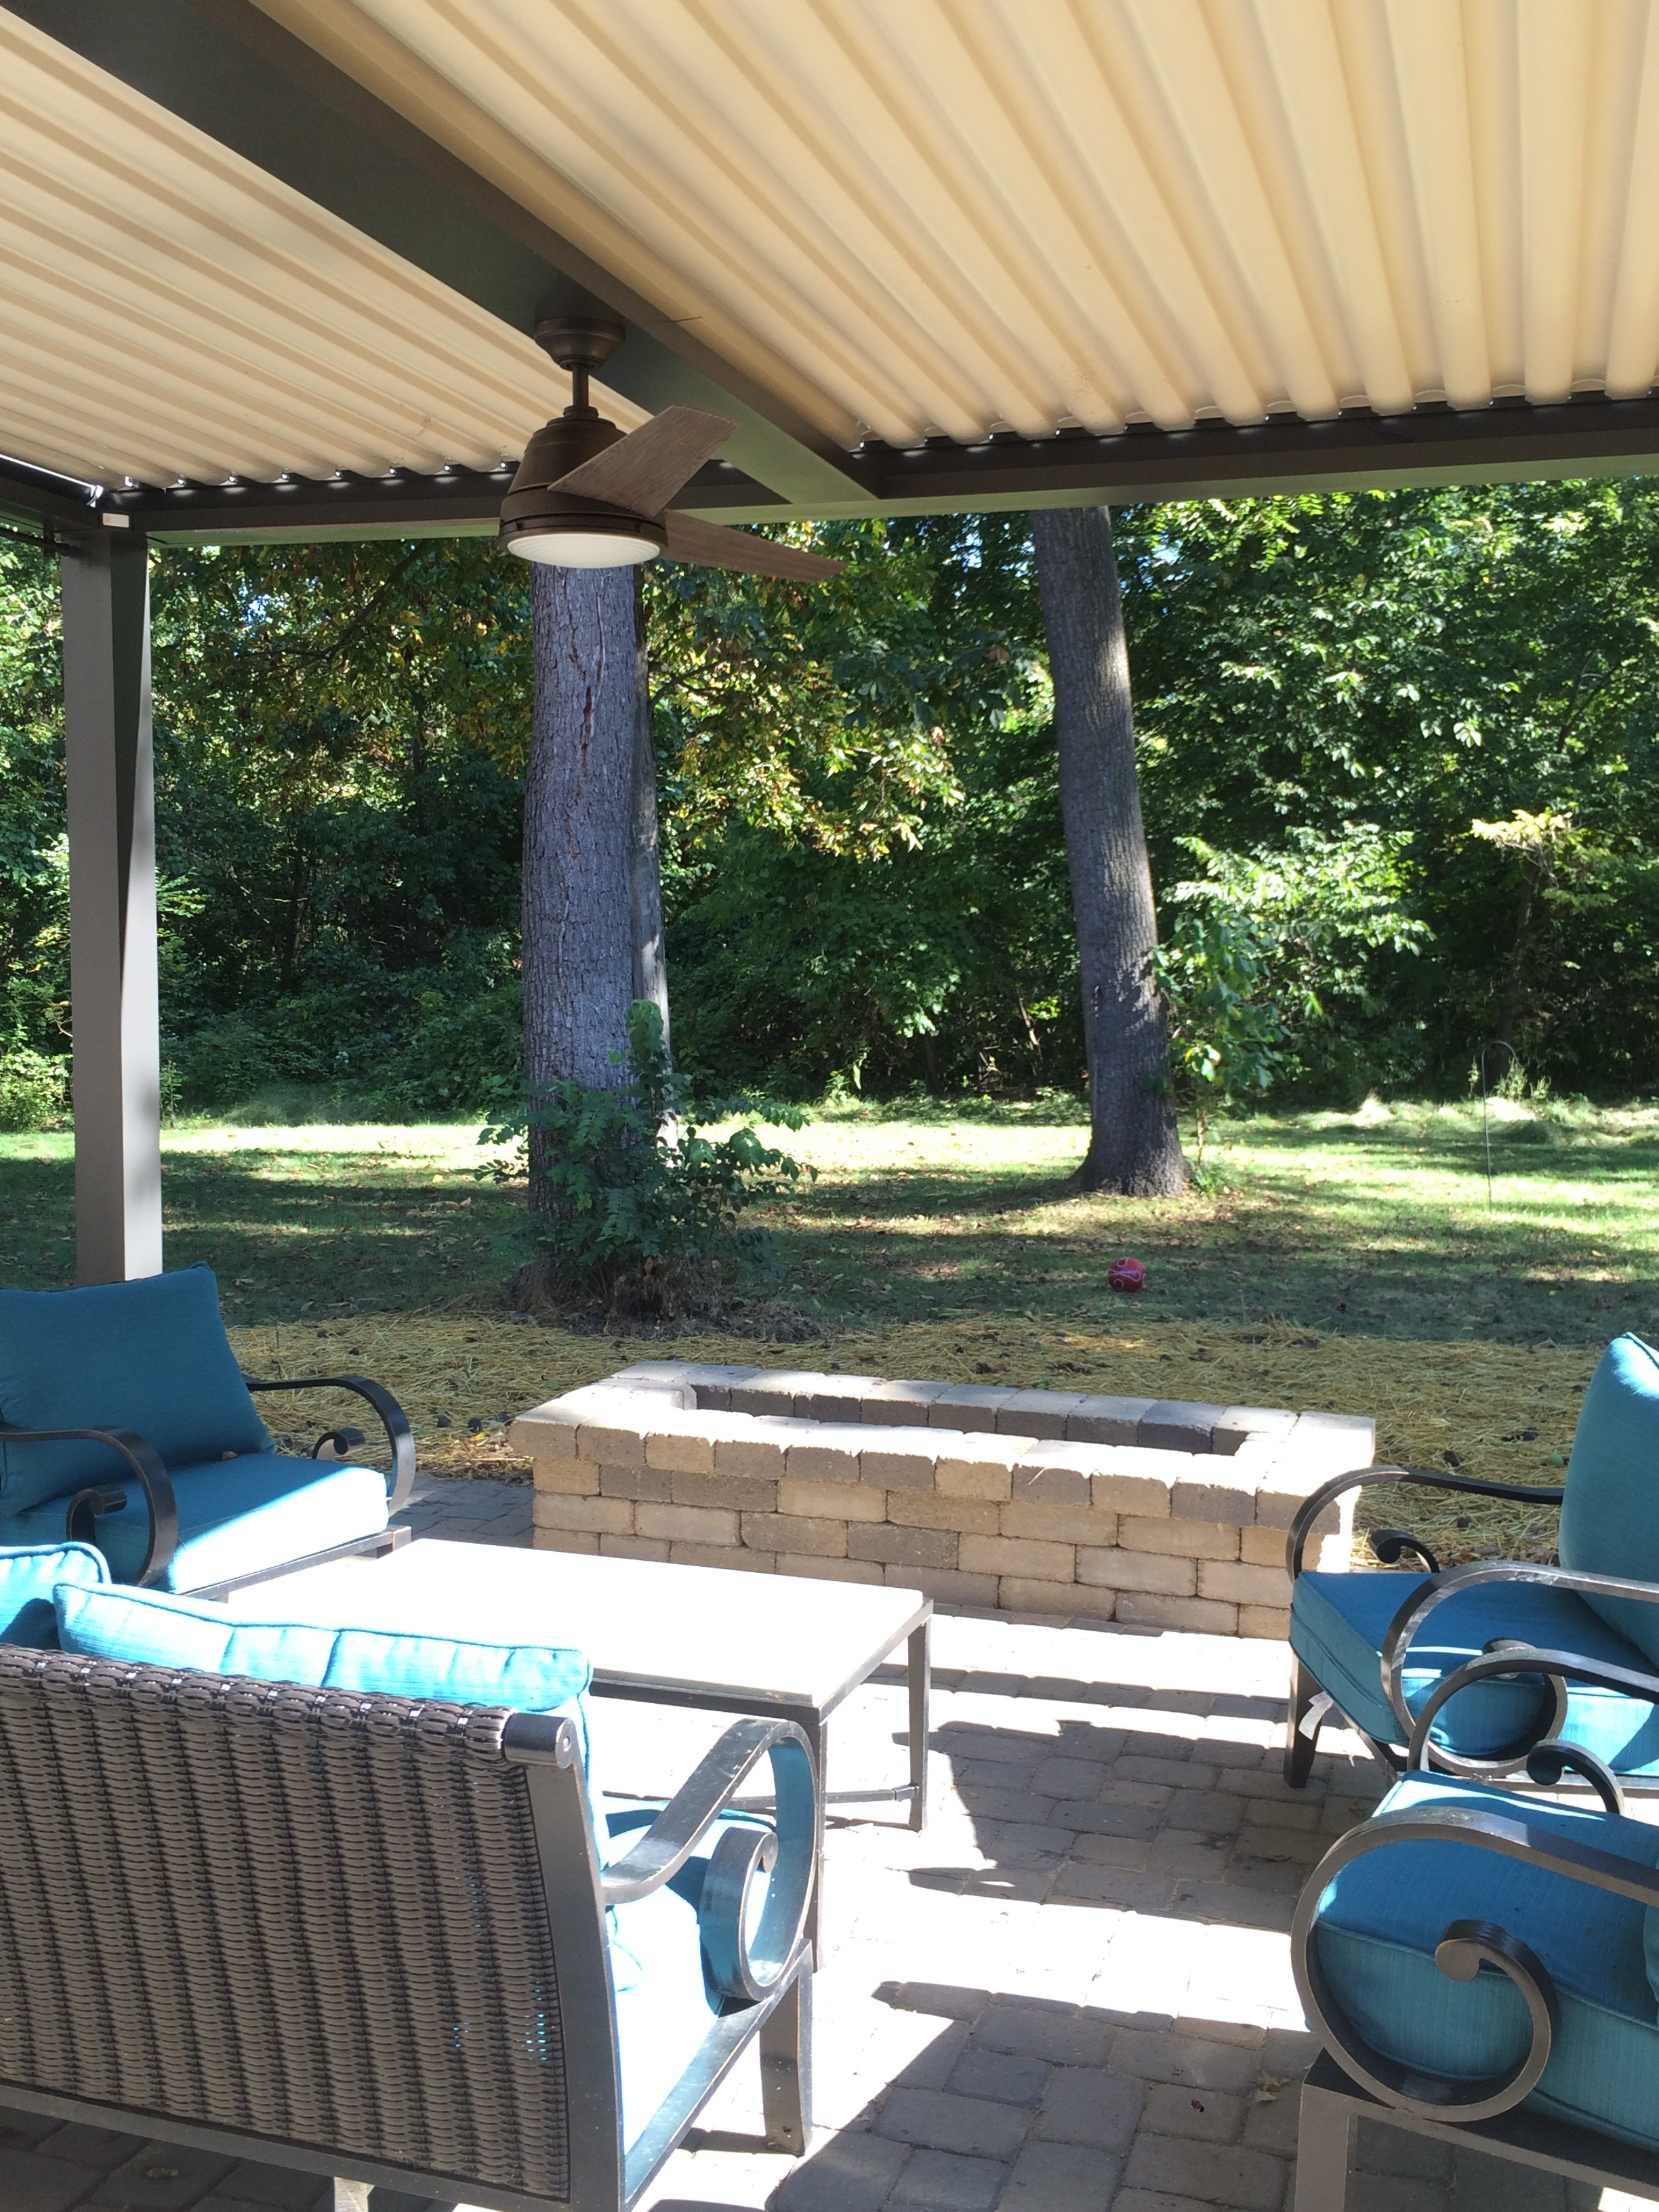 Carmel, IN - Patio cover - Free standing